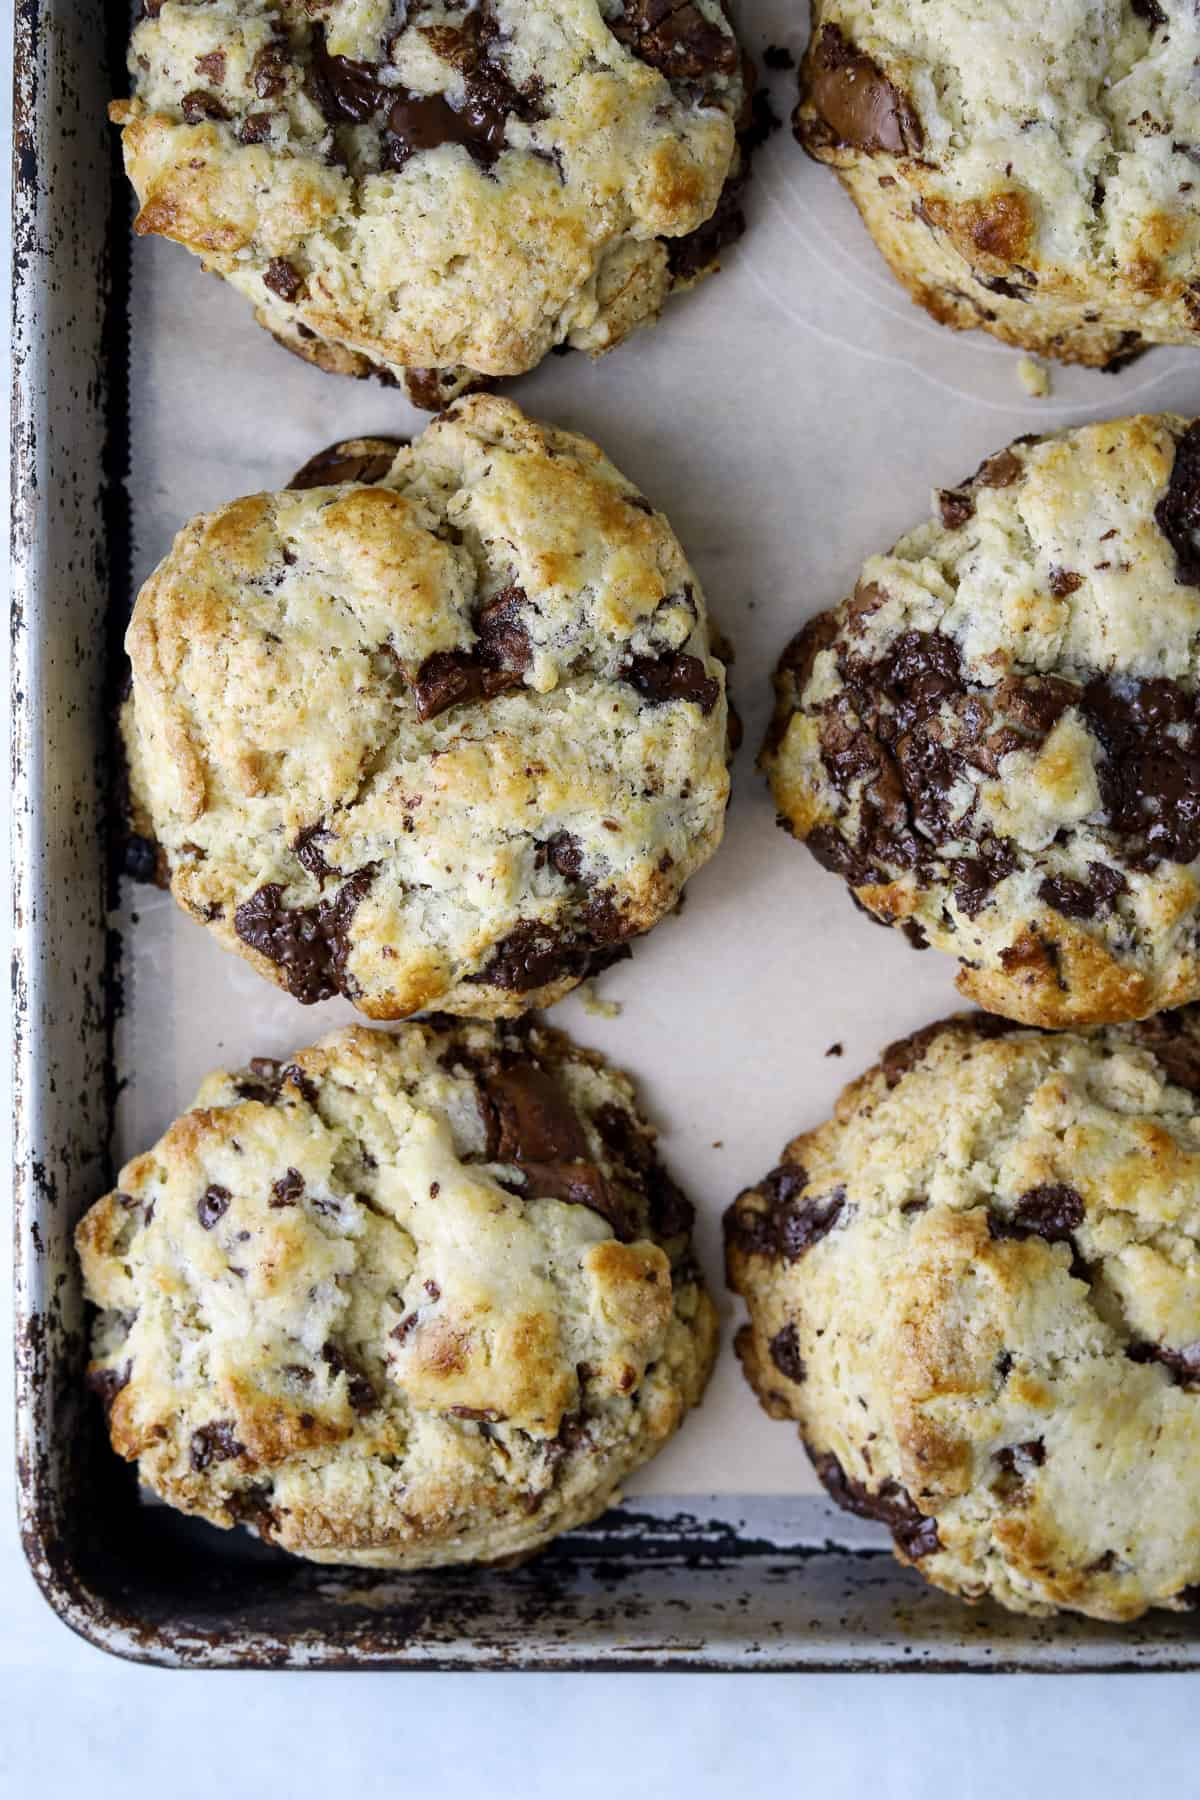 golden-brown baked chocolate scones with parchment paper